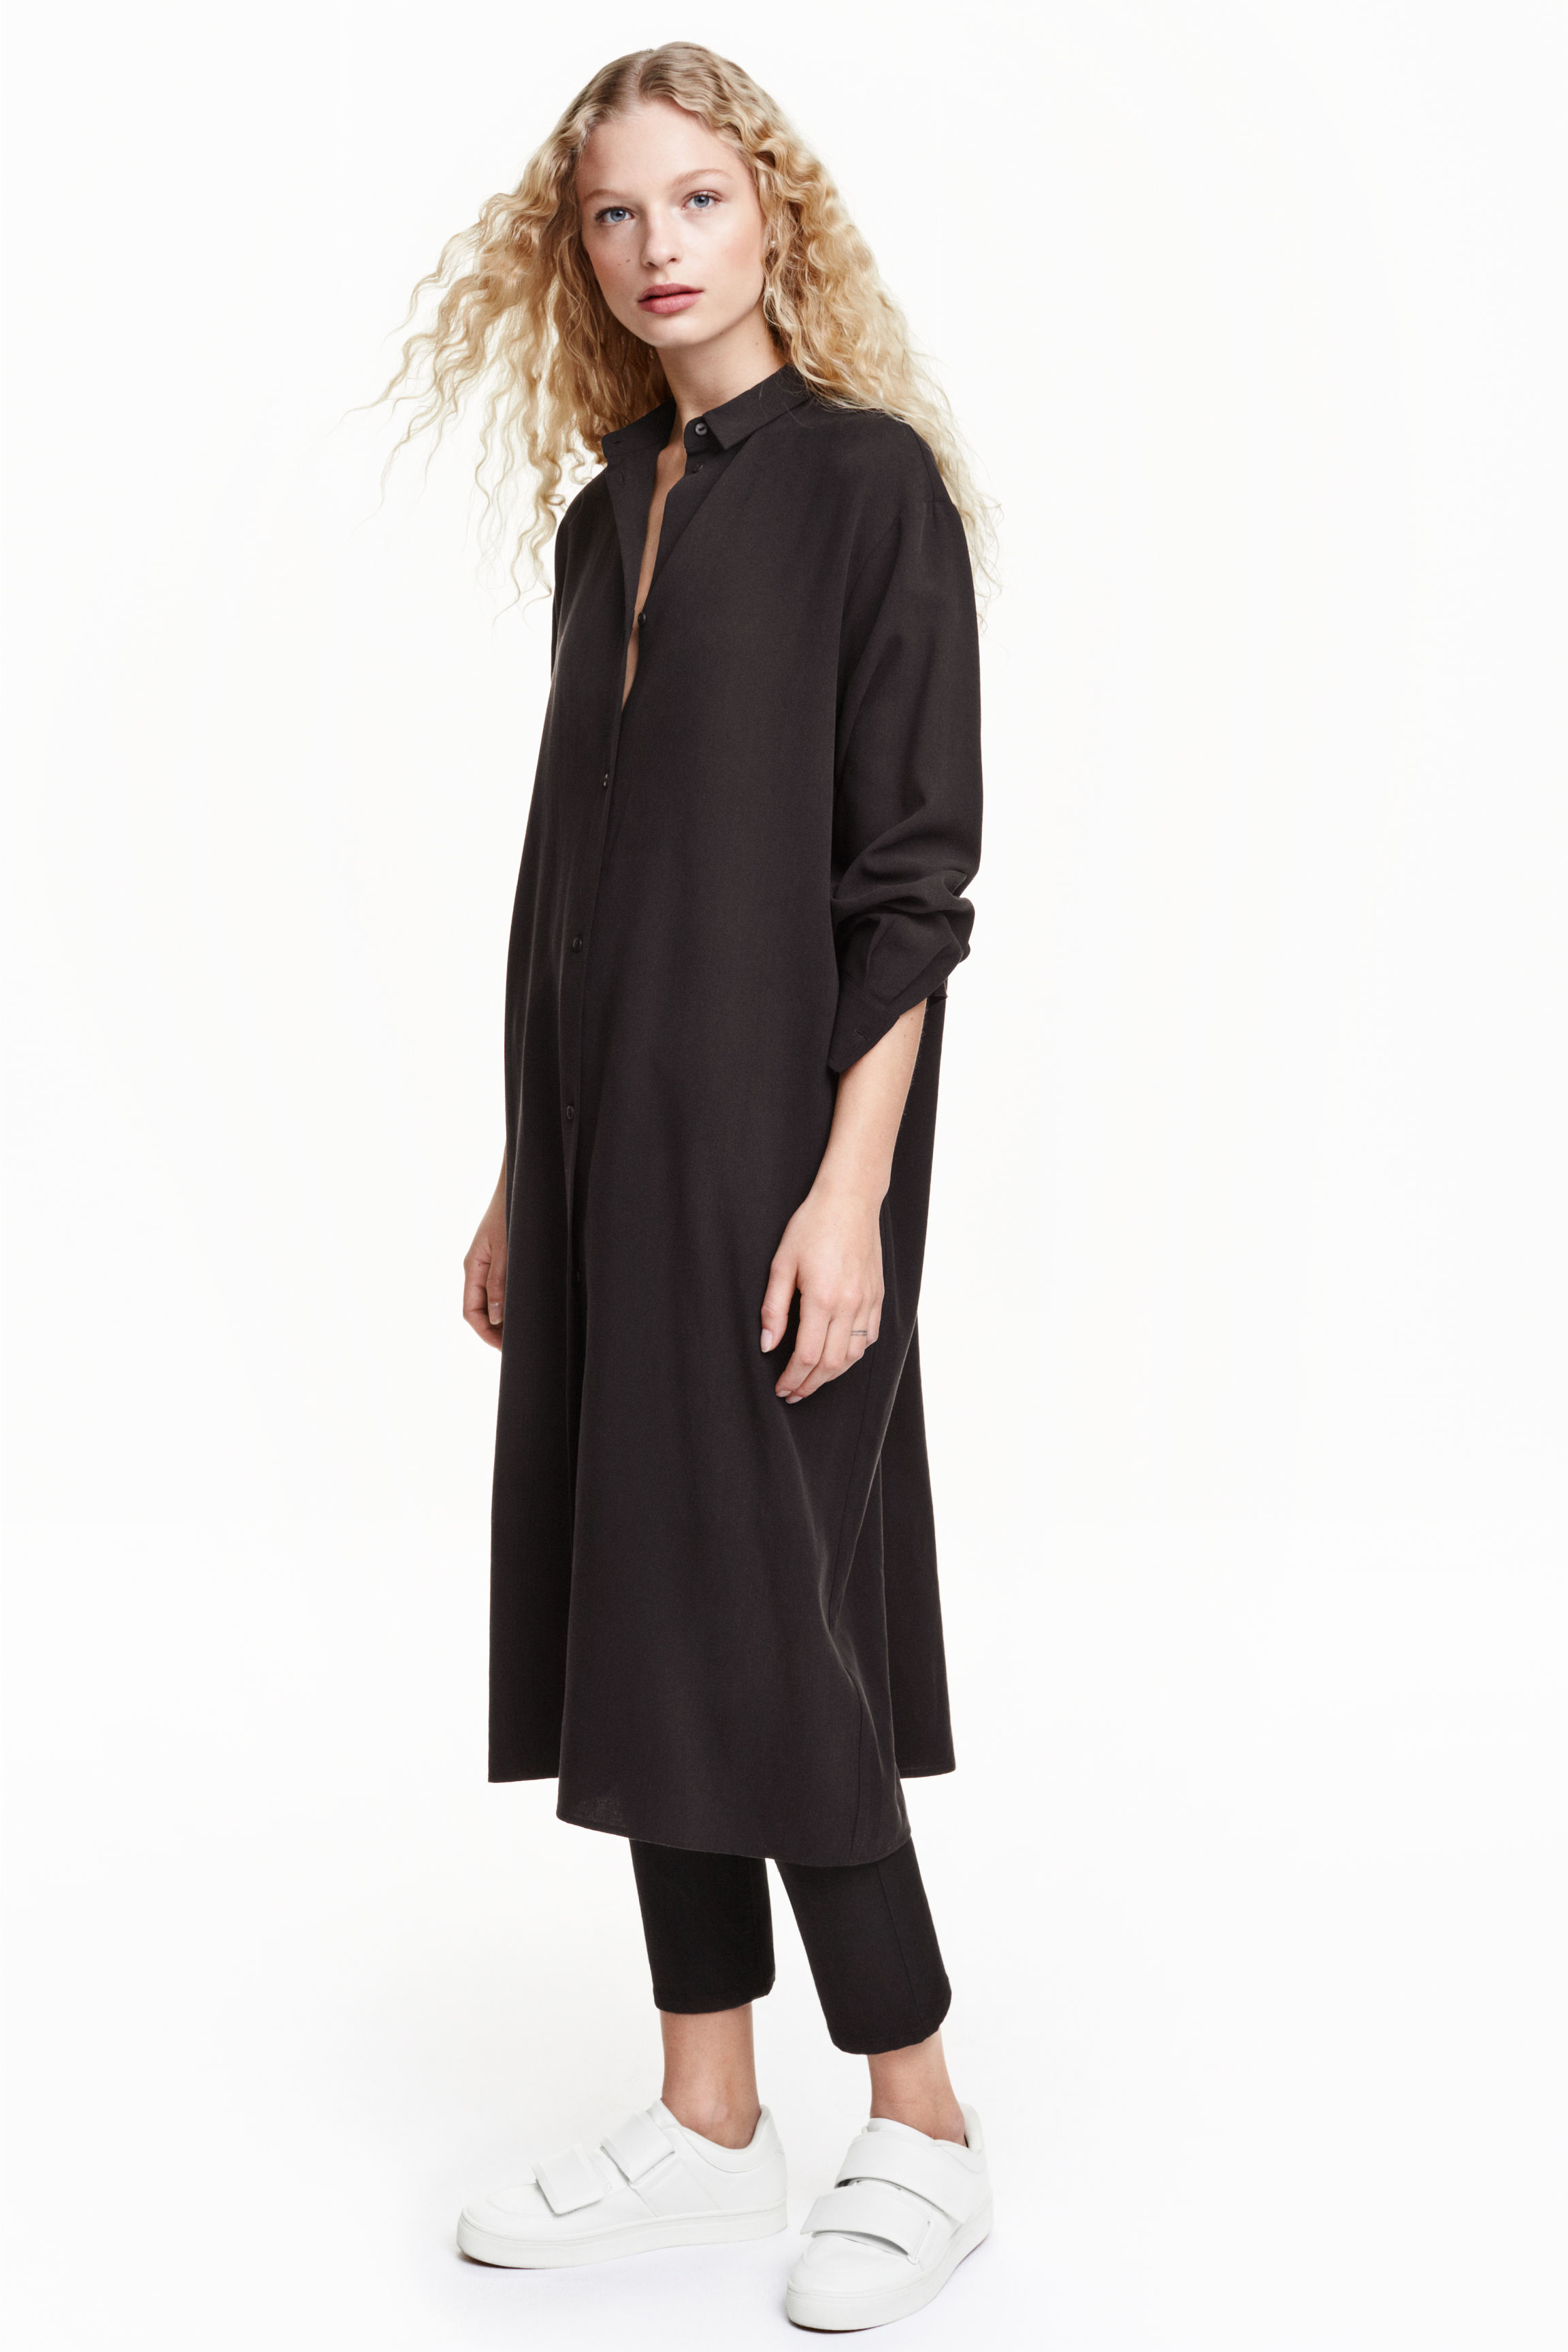 H&m Oversized Shirt in Black | Lyst